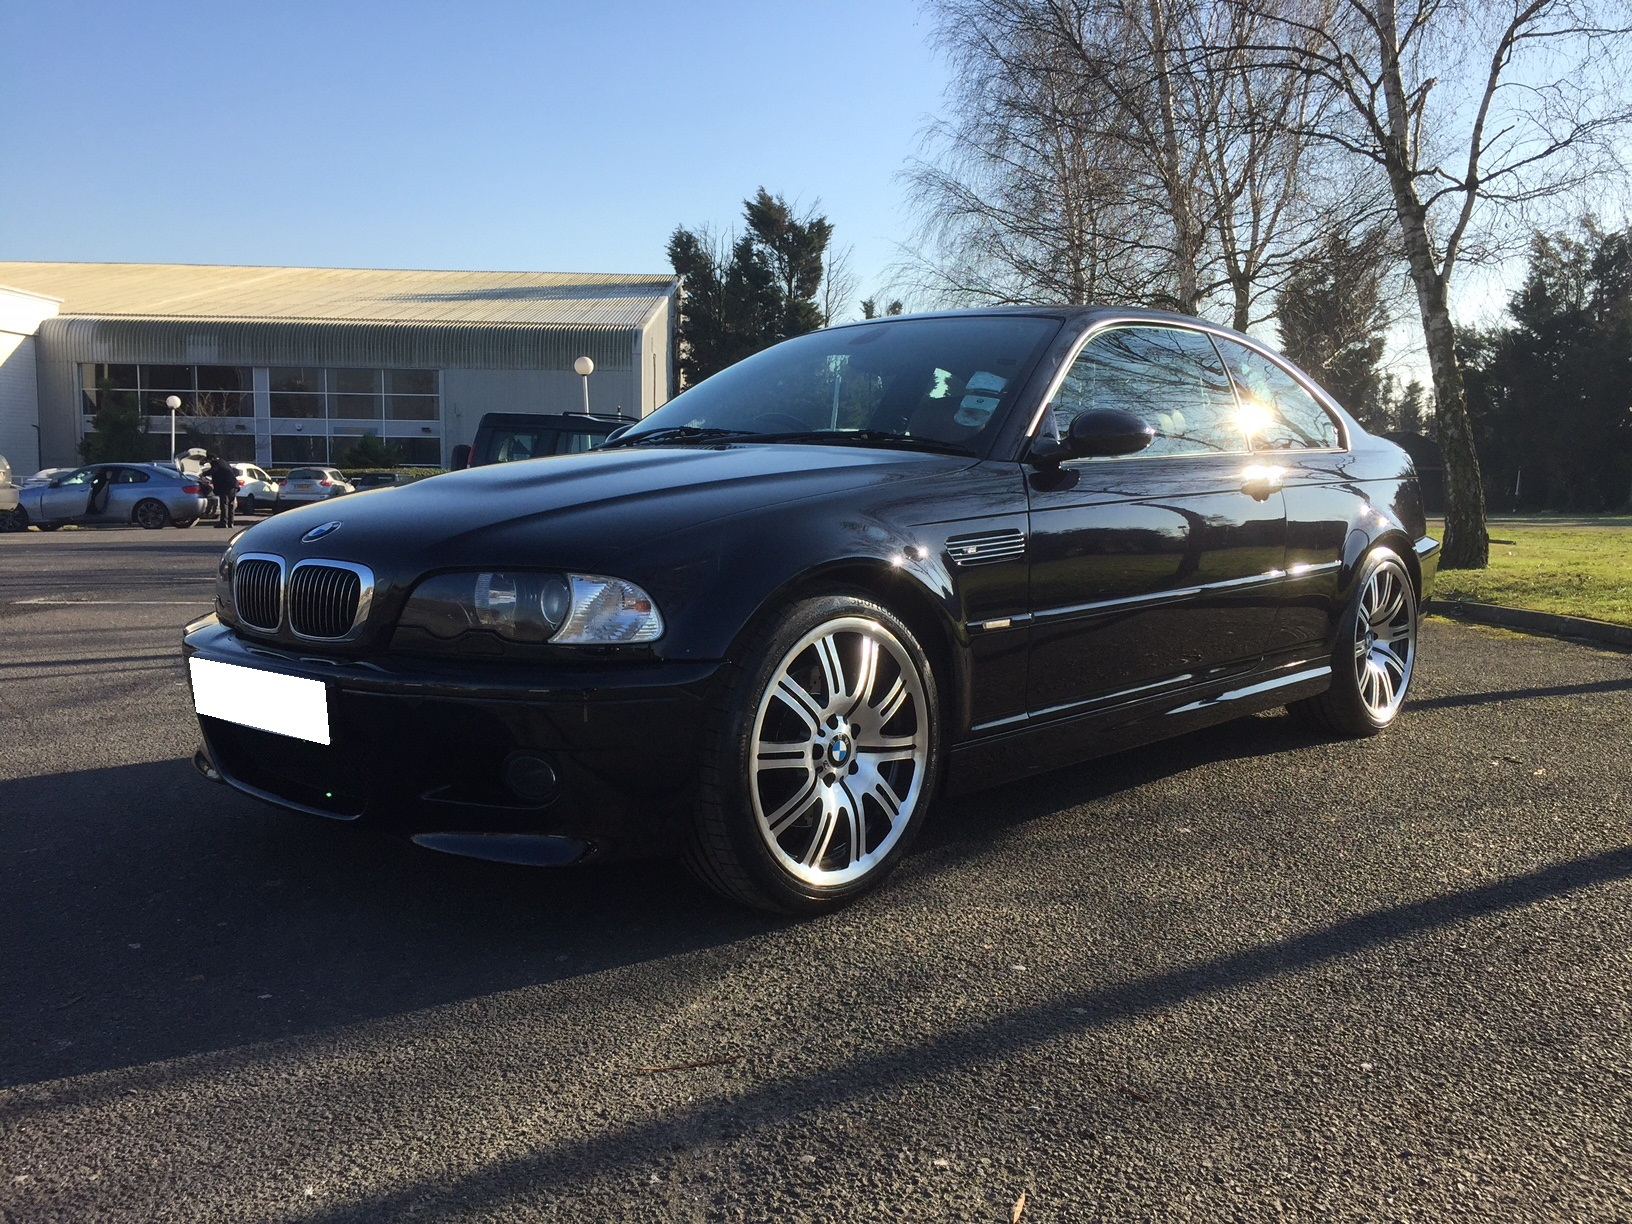 E46 M3 - Full Respray